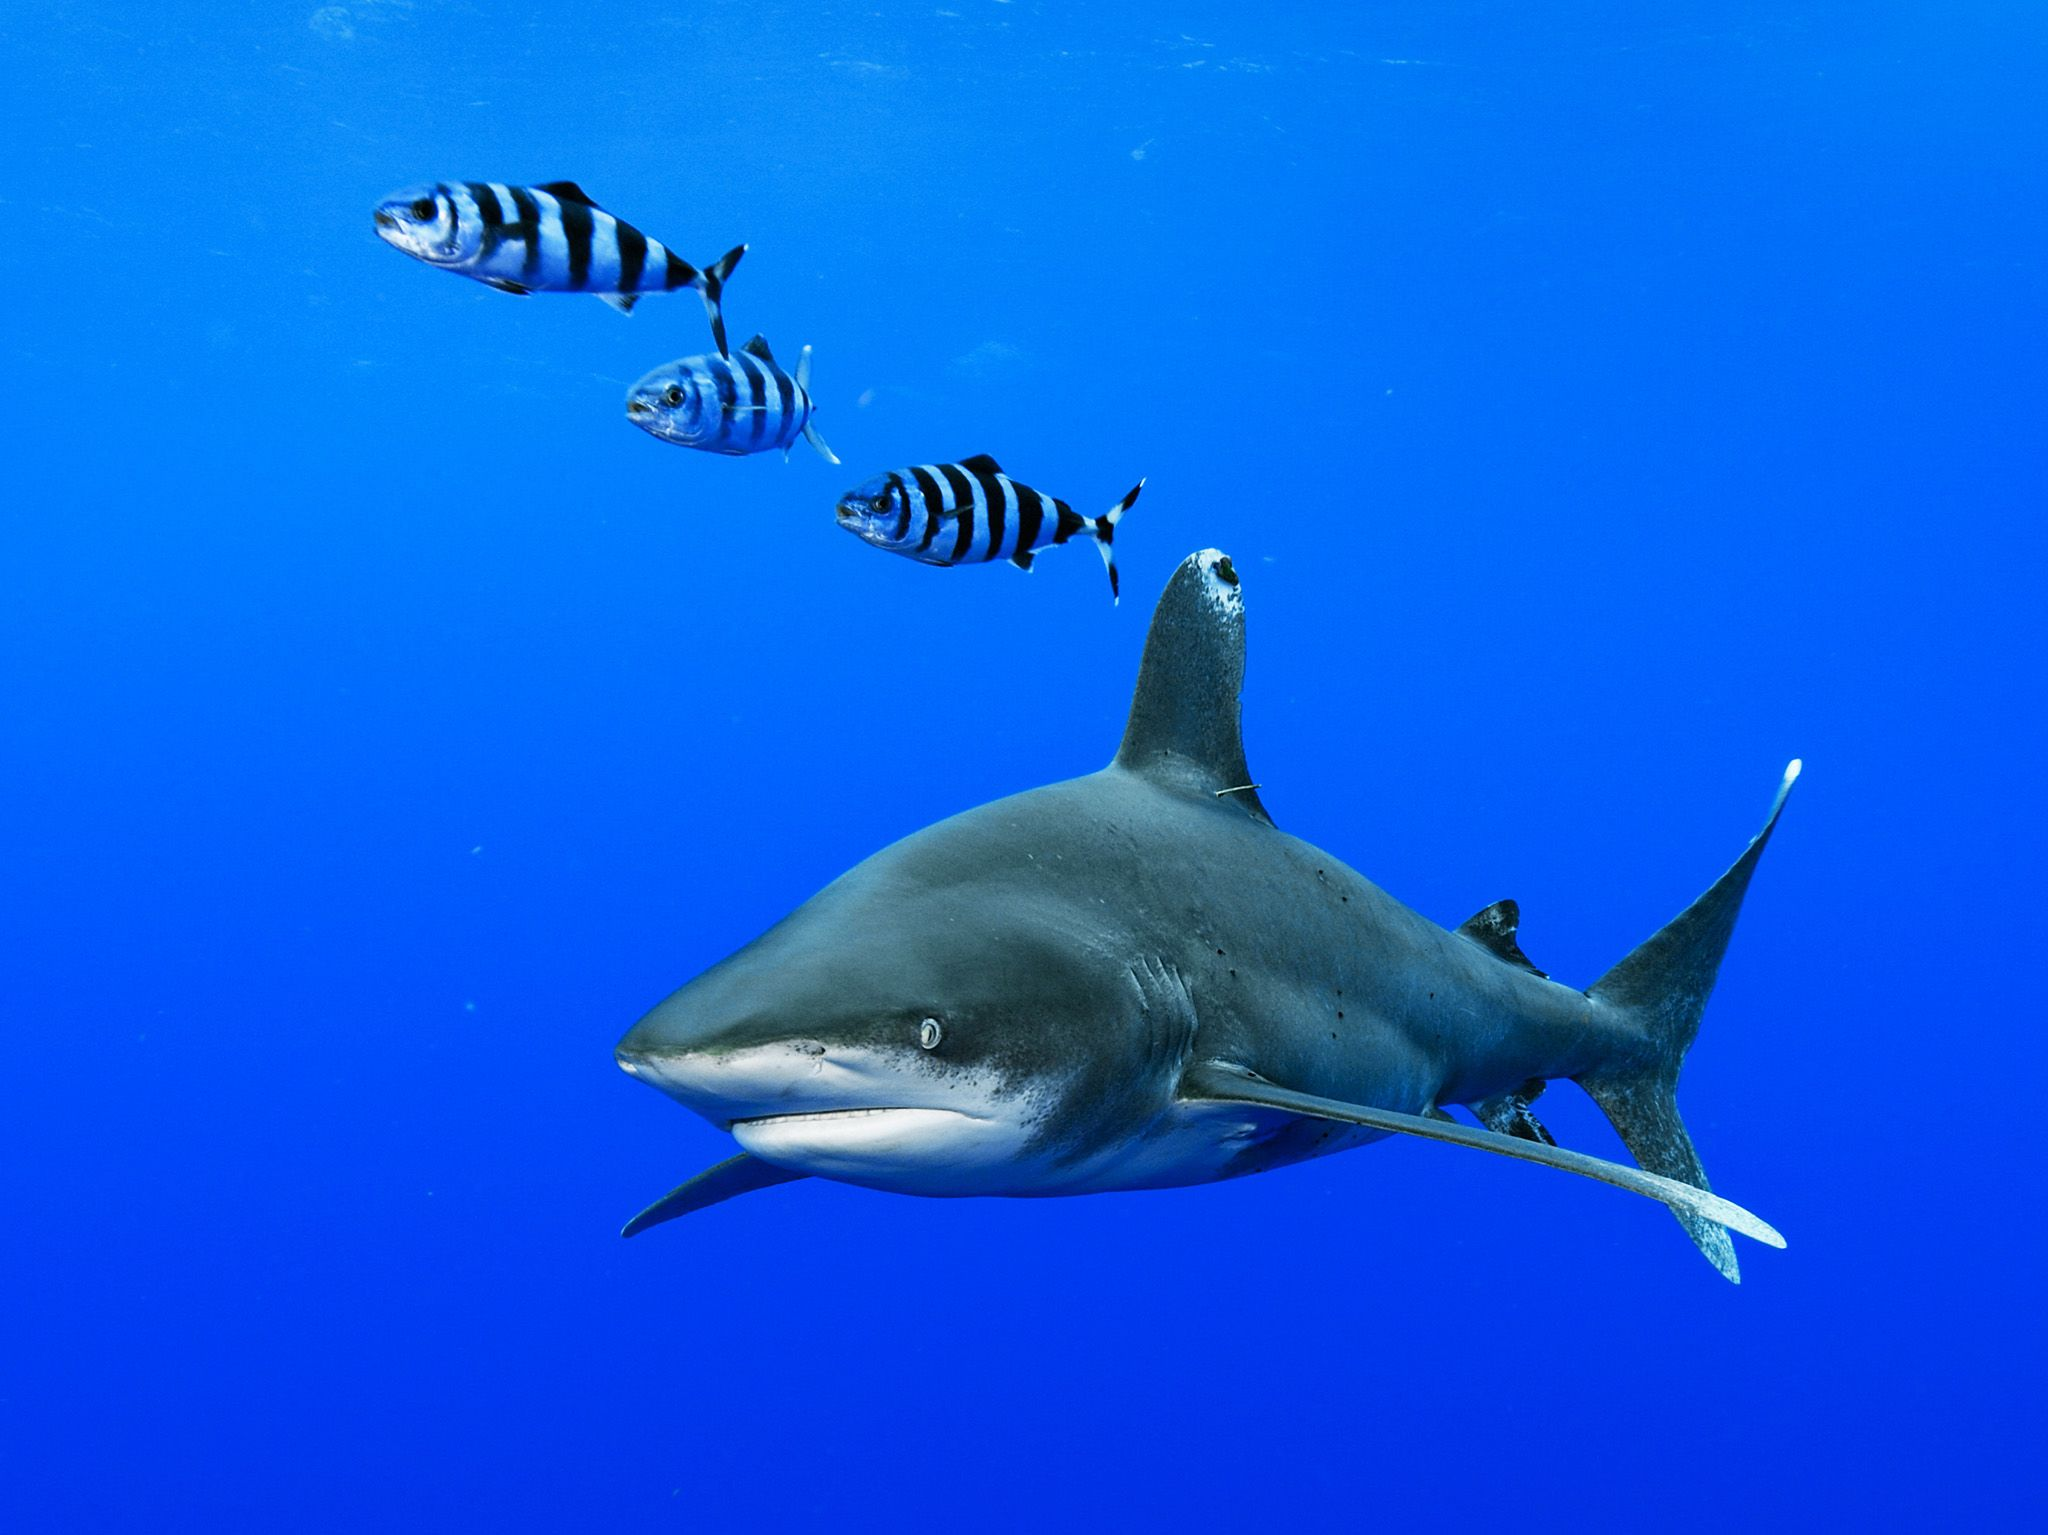 The Bahamas:  Oceanic whitetip shark (Carcharhinus longimanus) in the waters off Cat Island in... [Photo of the day - January 2018]